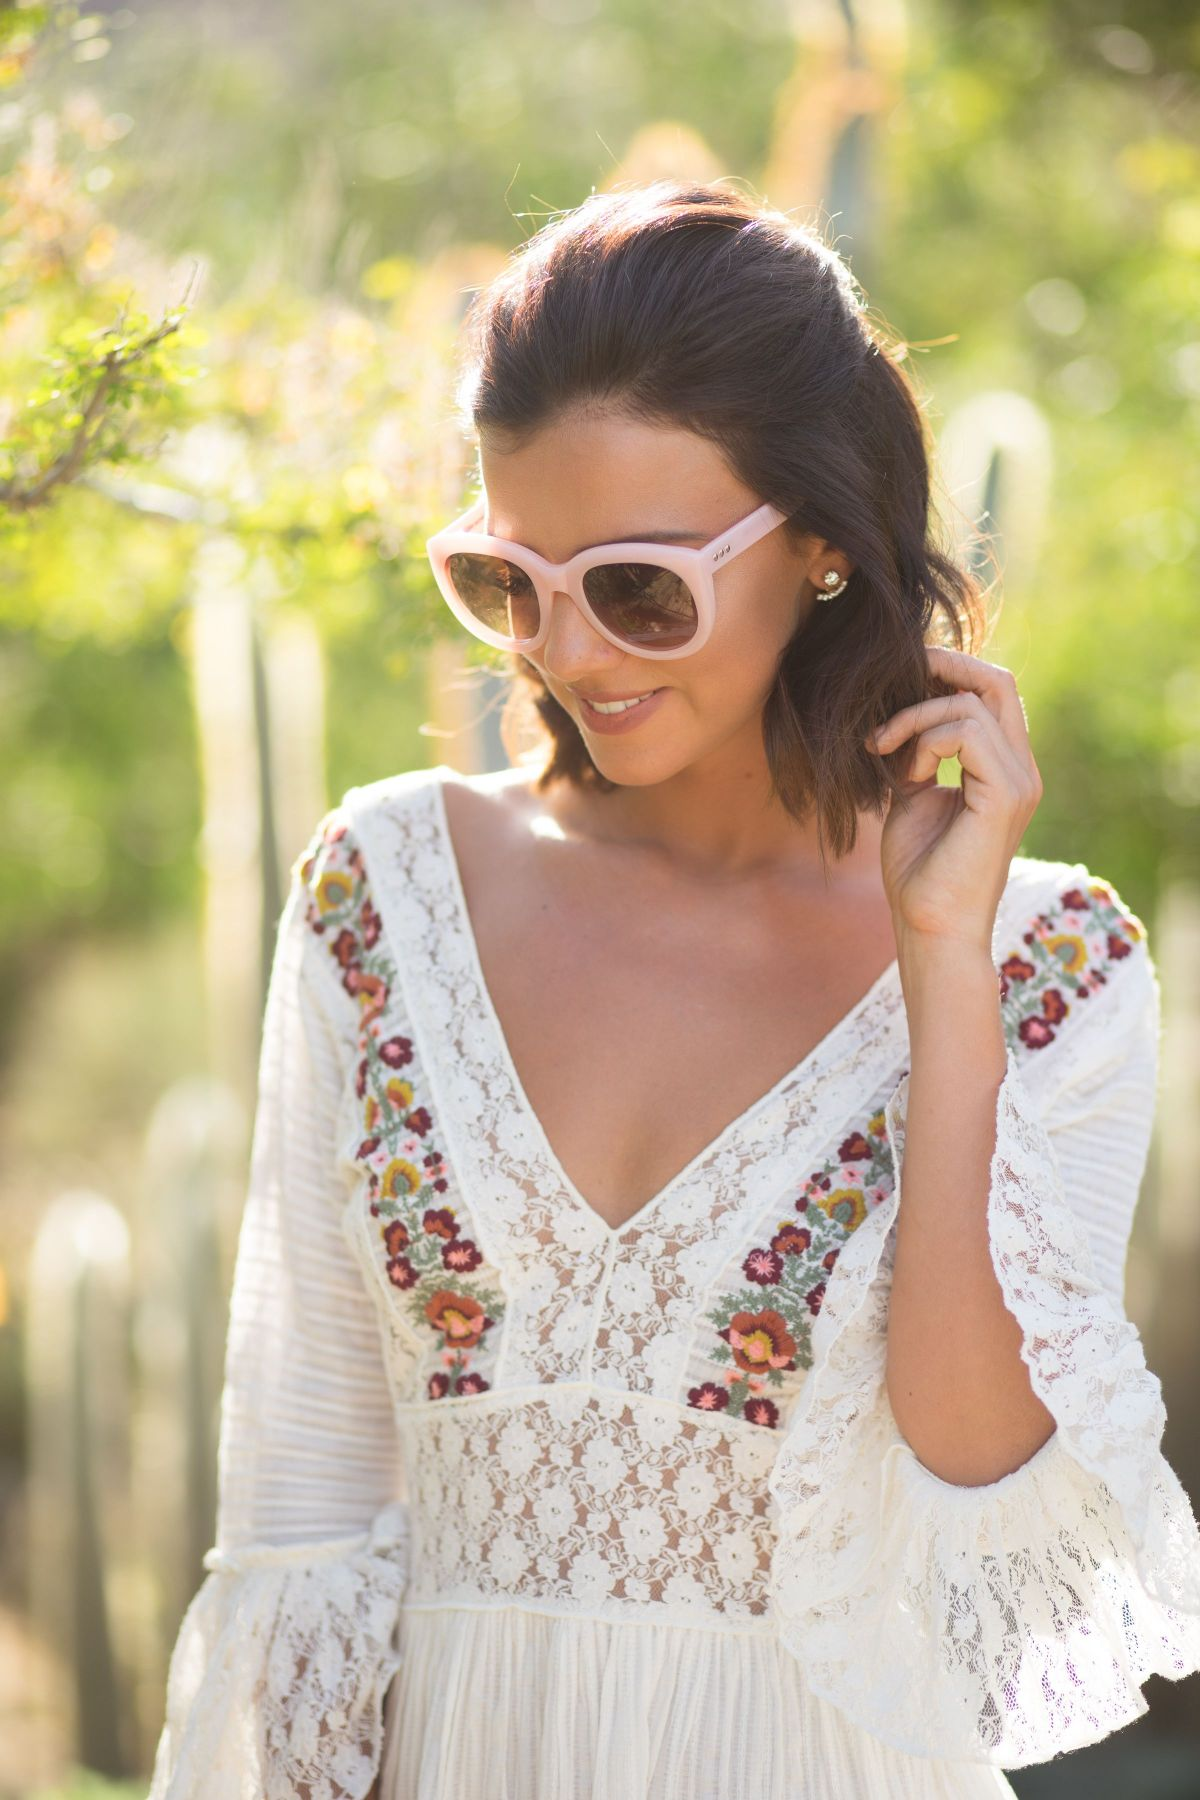 LUCY MECKLENBURGH at Rachel Zoeasis at Coachella Valley Music and Arts Festival 04/15/2017